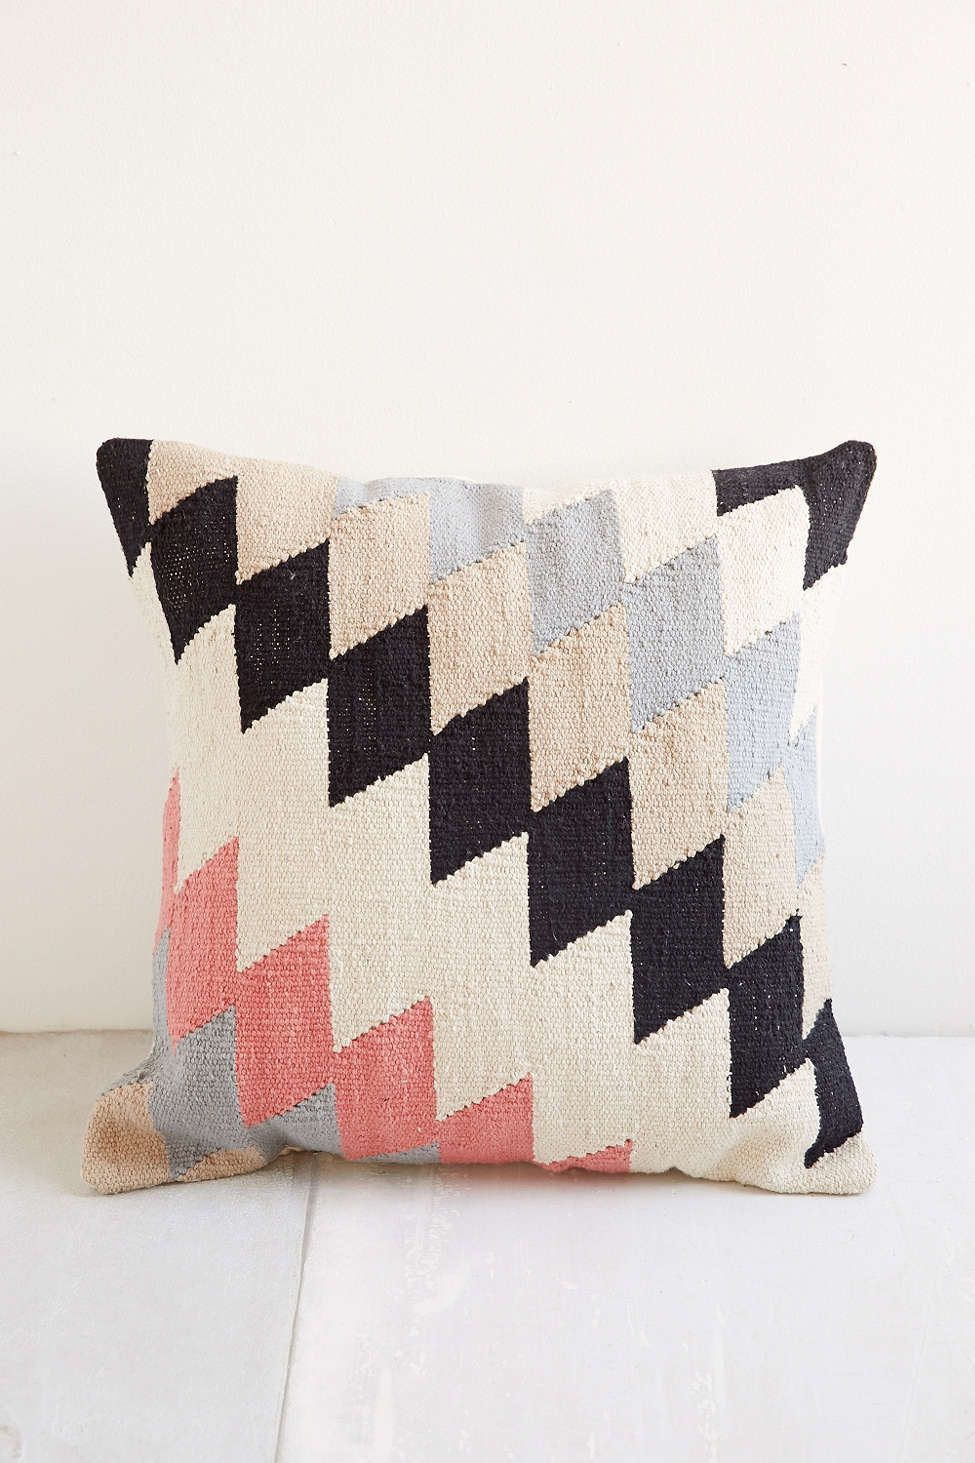 Throw Pillows Urban Outfitters : Plum & Bow Andanda Kilim Pillow Kilim pillows, Urban outfitters and Pillows